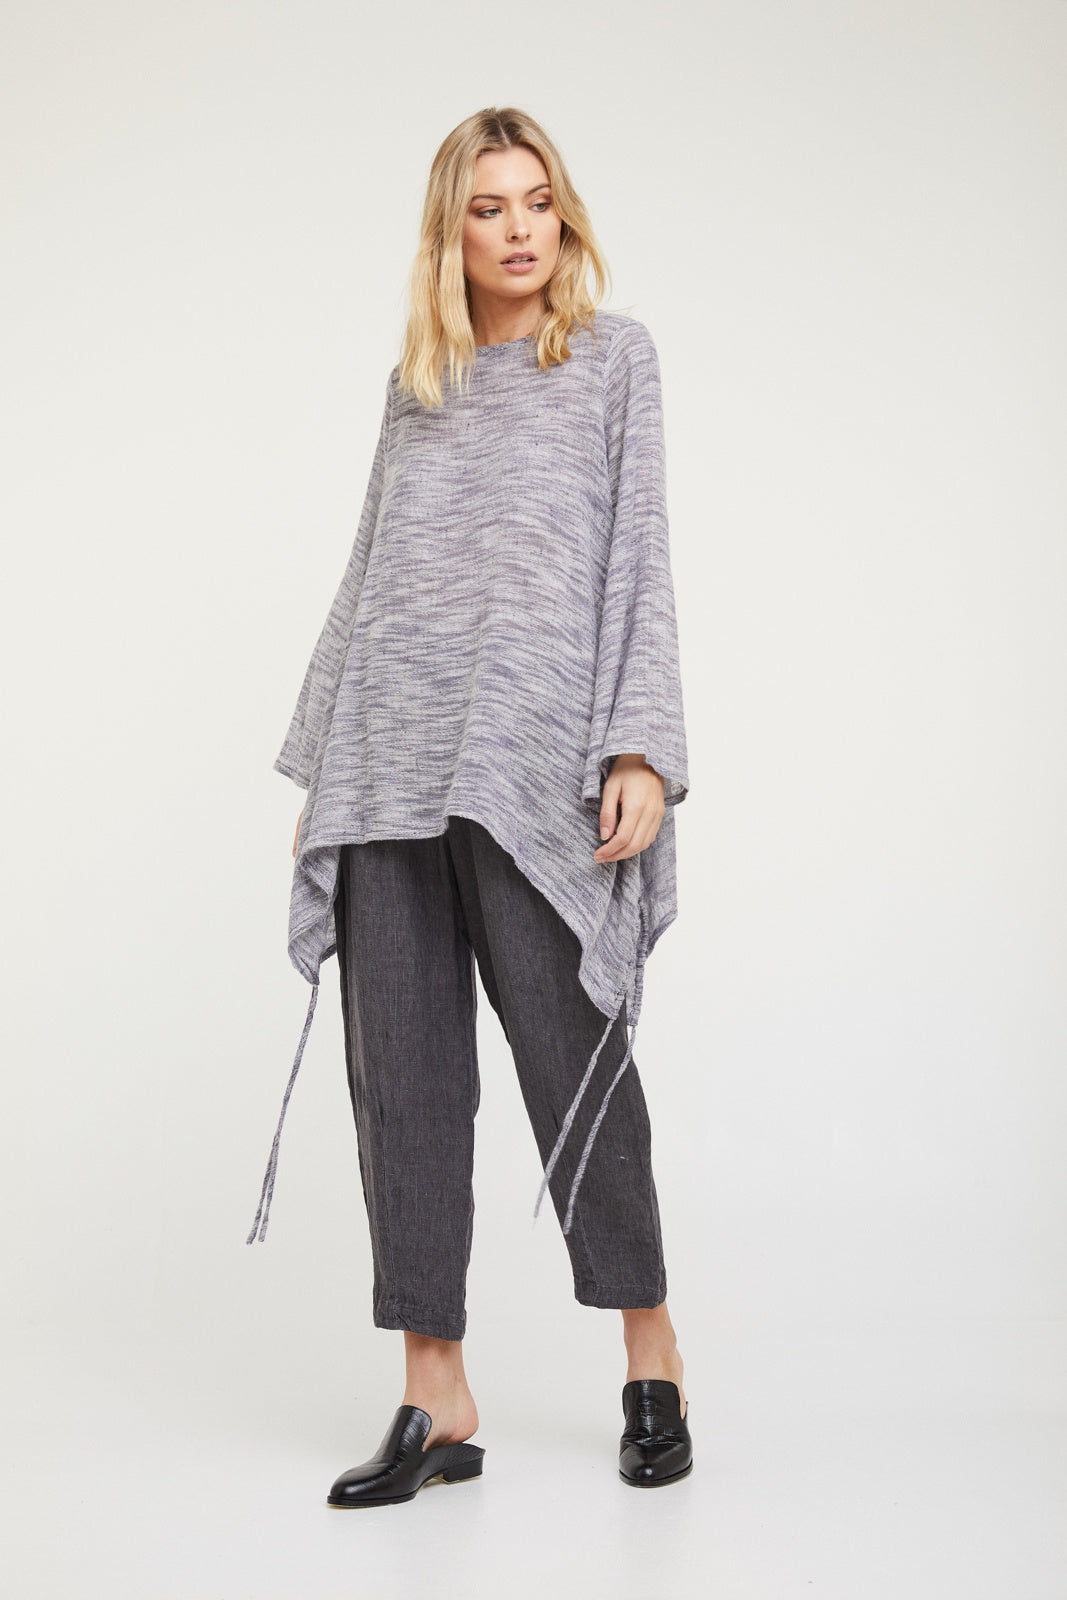 Valia Drift Away Tunic Indigo Marle